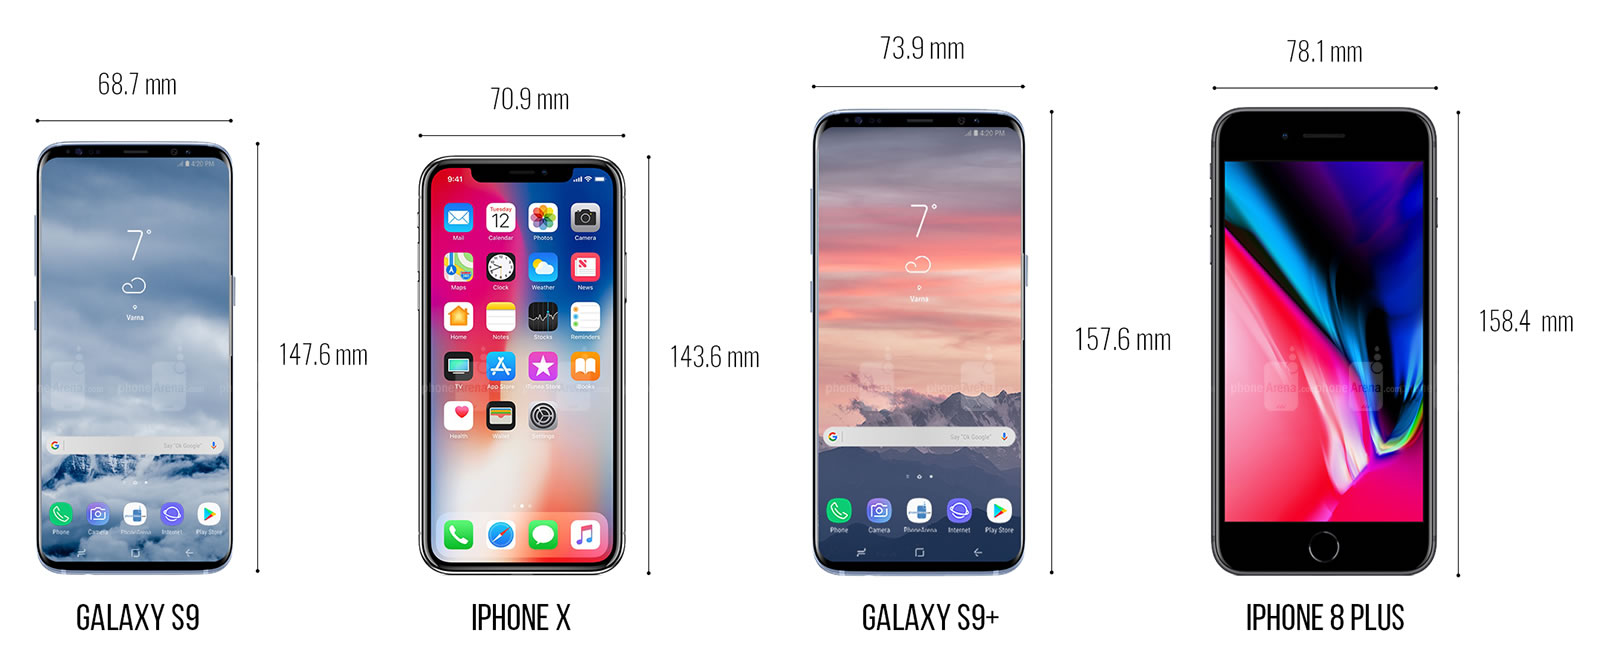 сравнение iphone x vs galaxy 9s